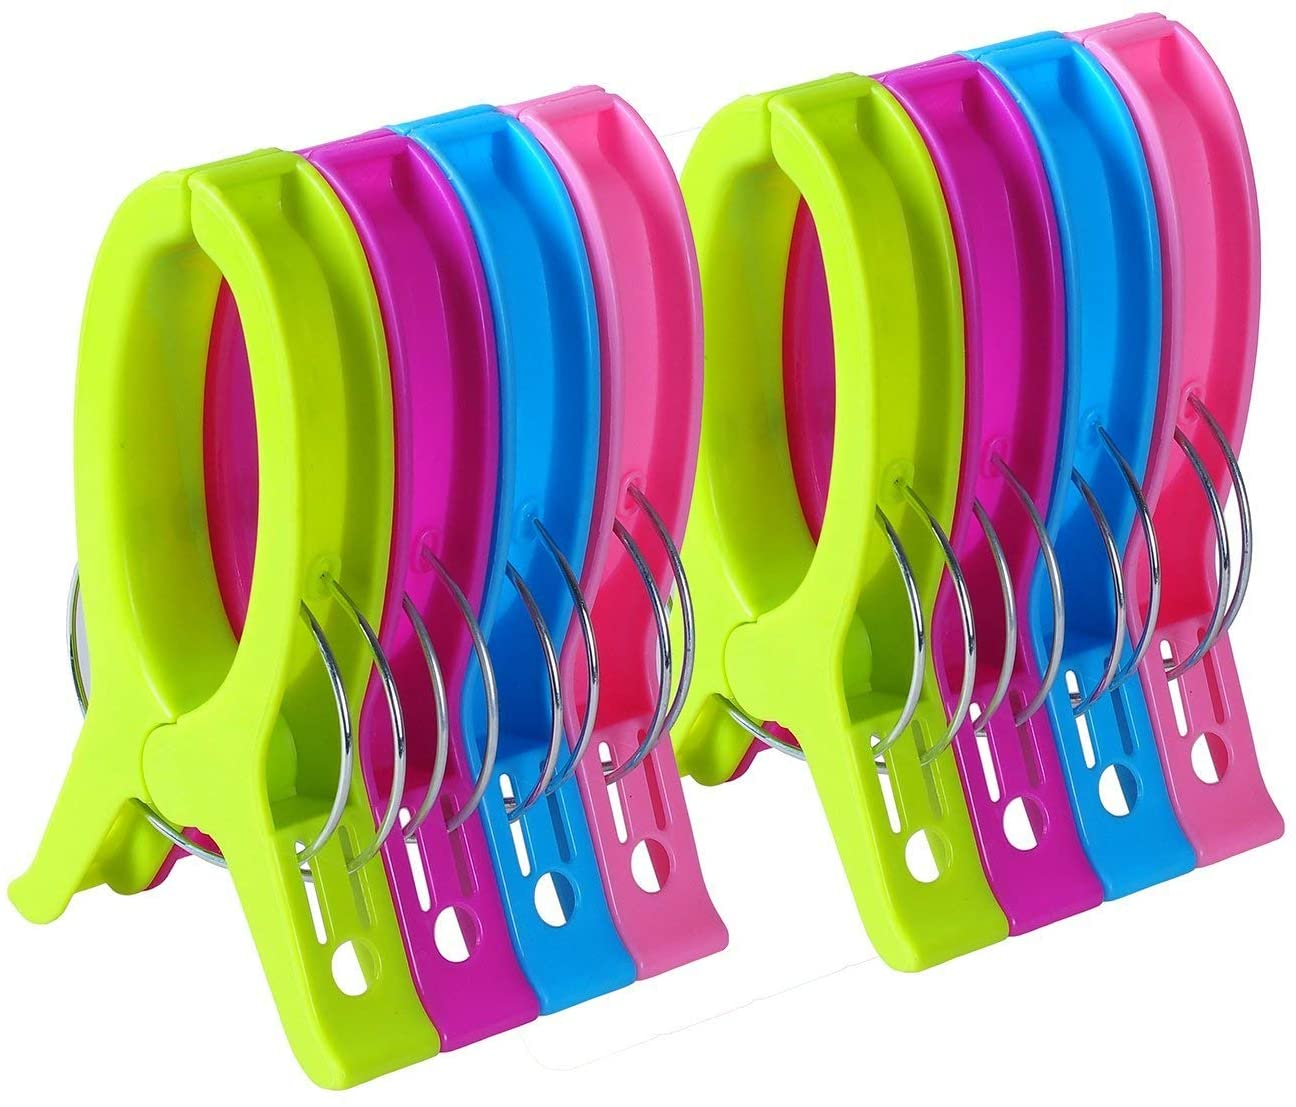 8 Pack Beach Towel Clips for Beach Chairs Or Lounge Chair - Keep Your Towel from Blowing Away - 6.3 Inch